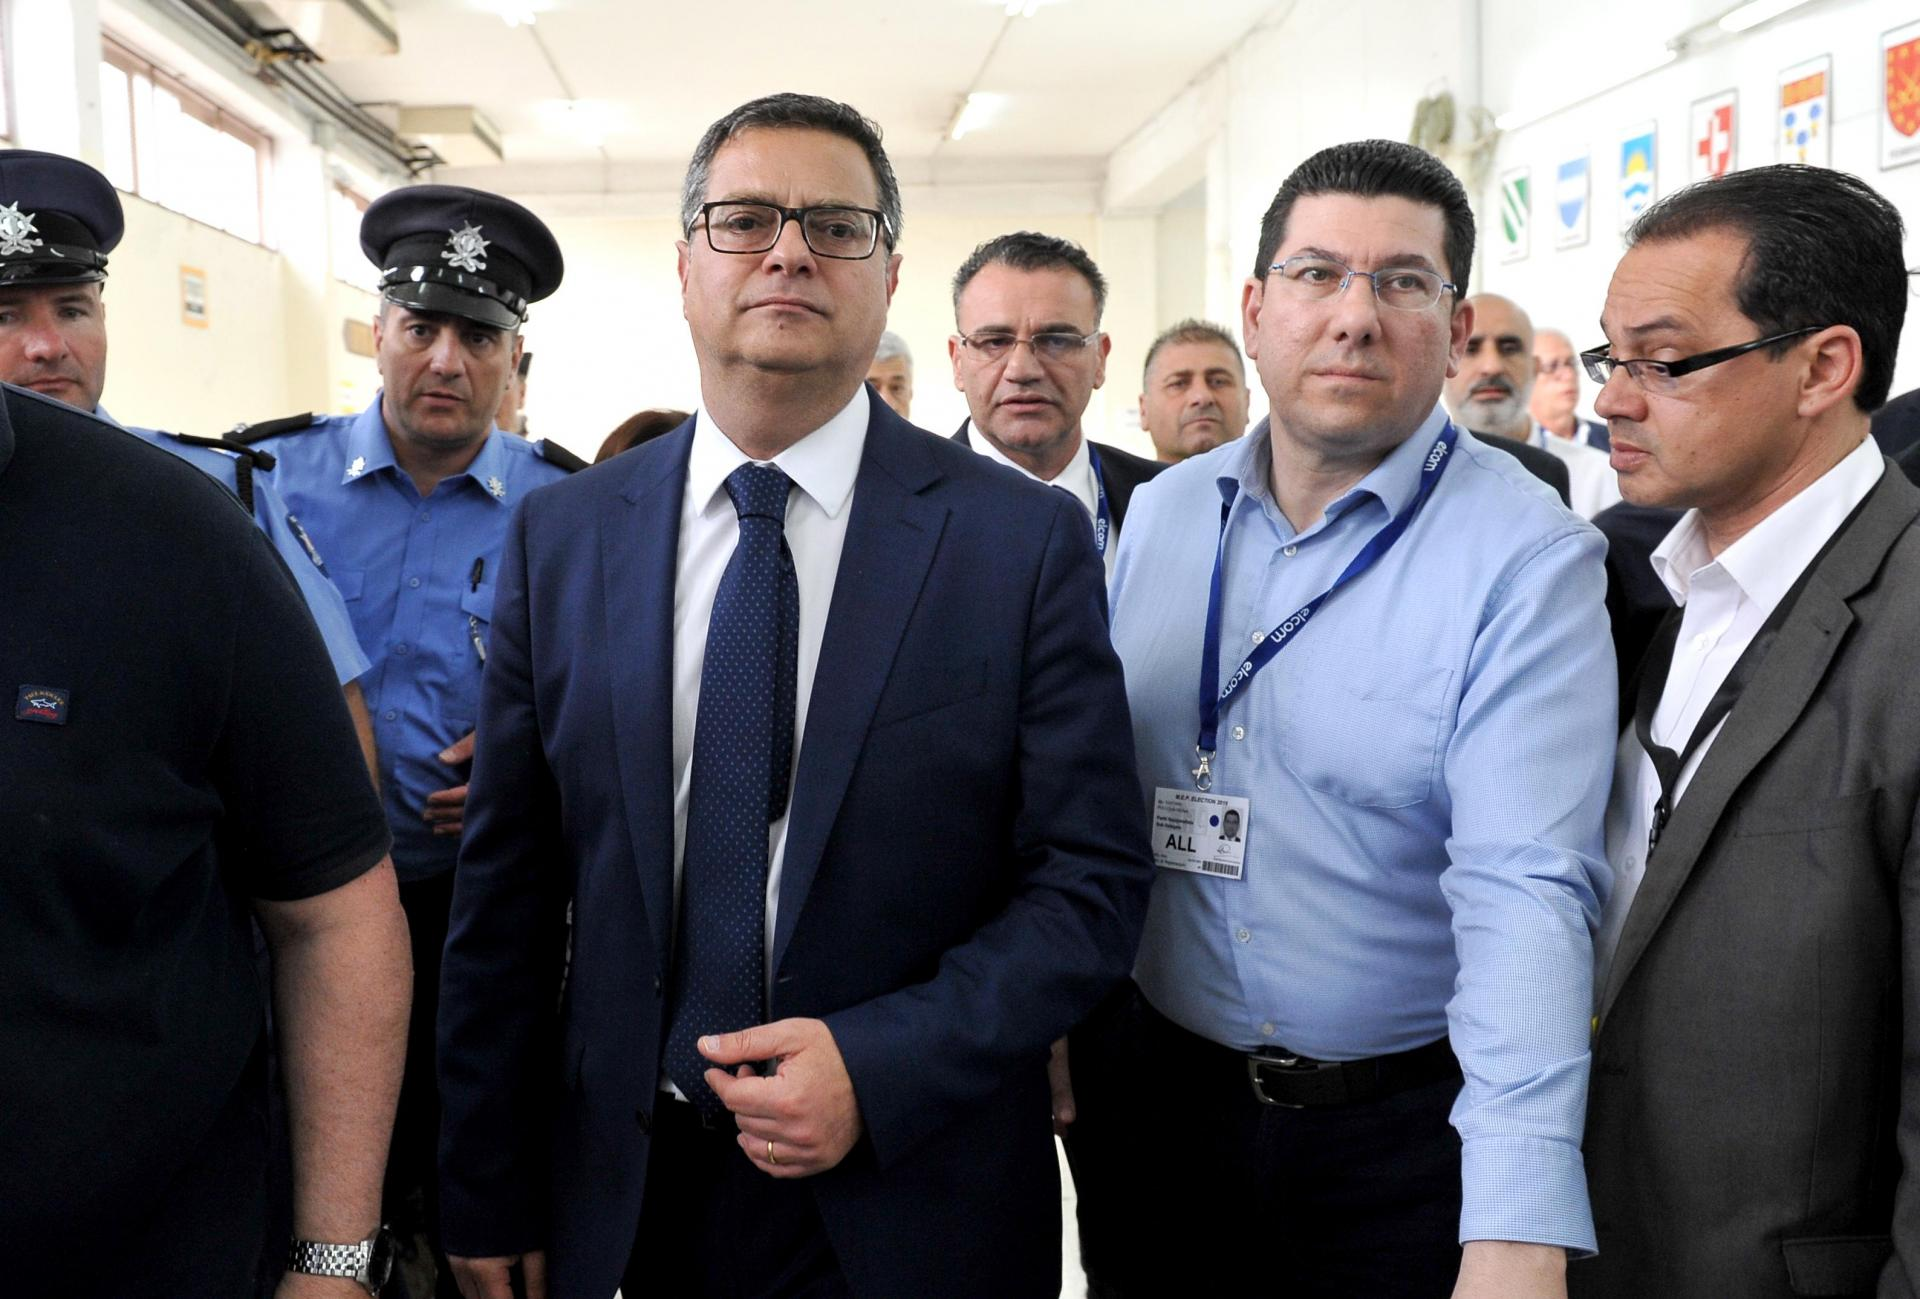 Clyde Puli (second from right) leads party leader Adrian Delia through the Naxxar counting hall during the 2019 MEP and local council elections.